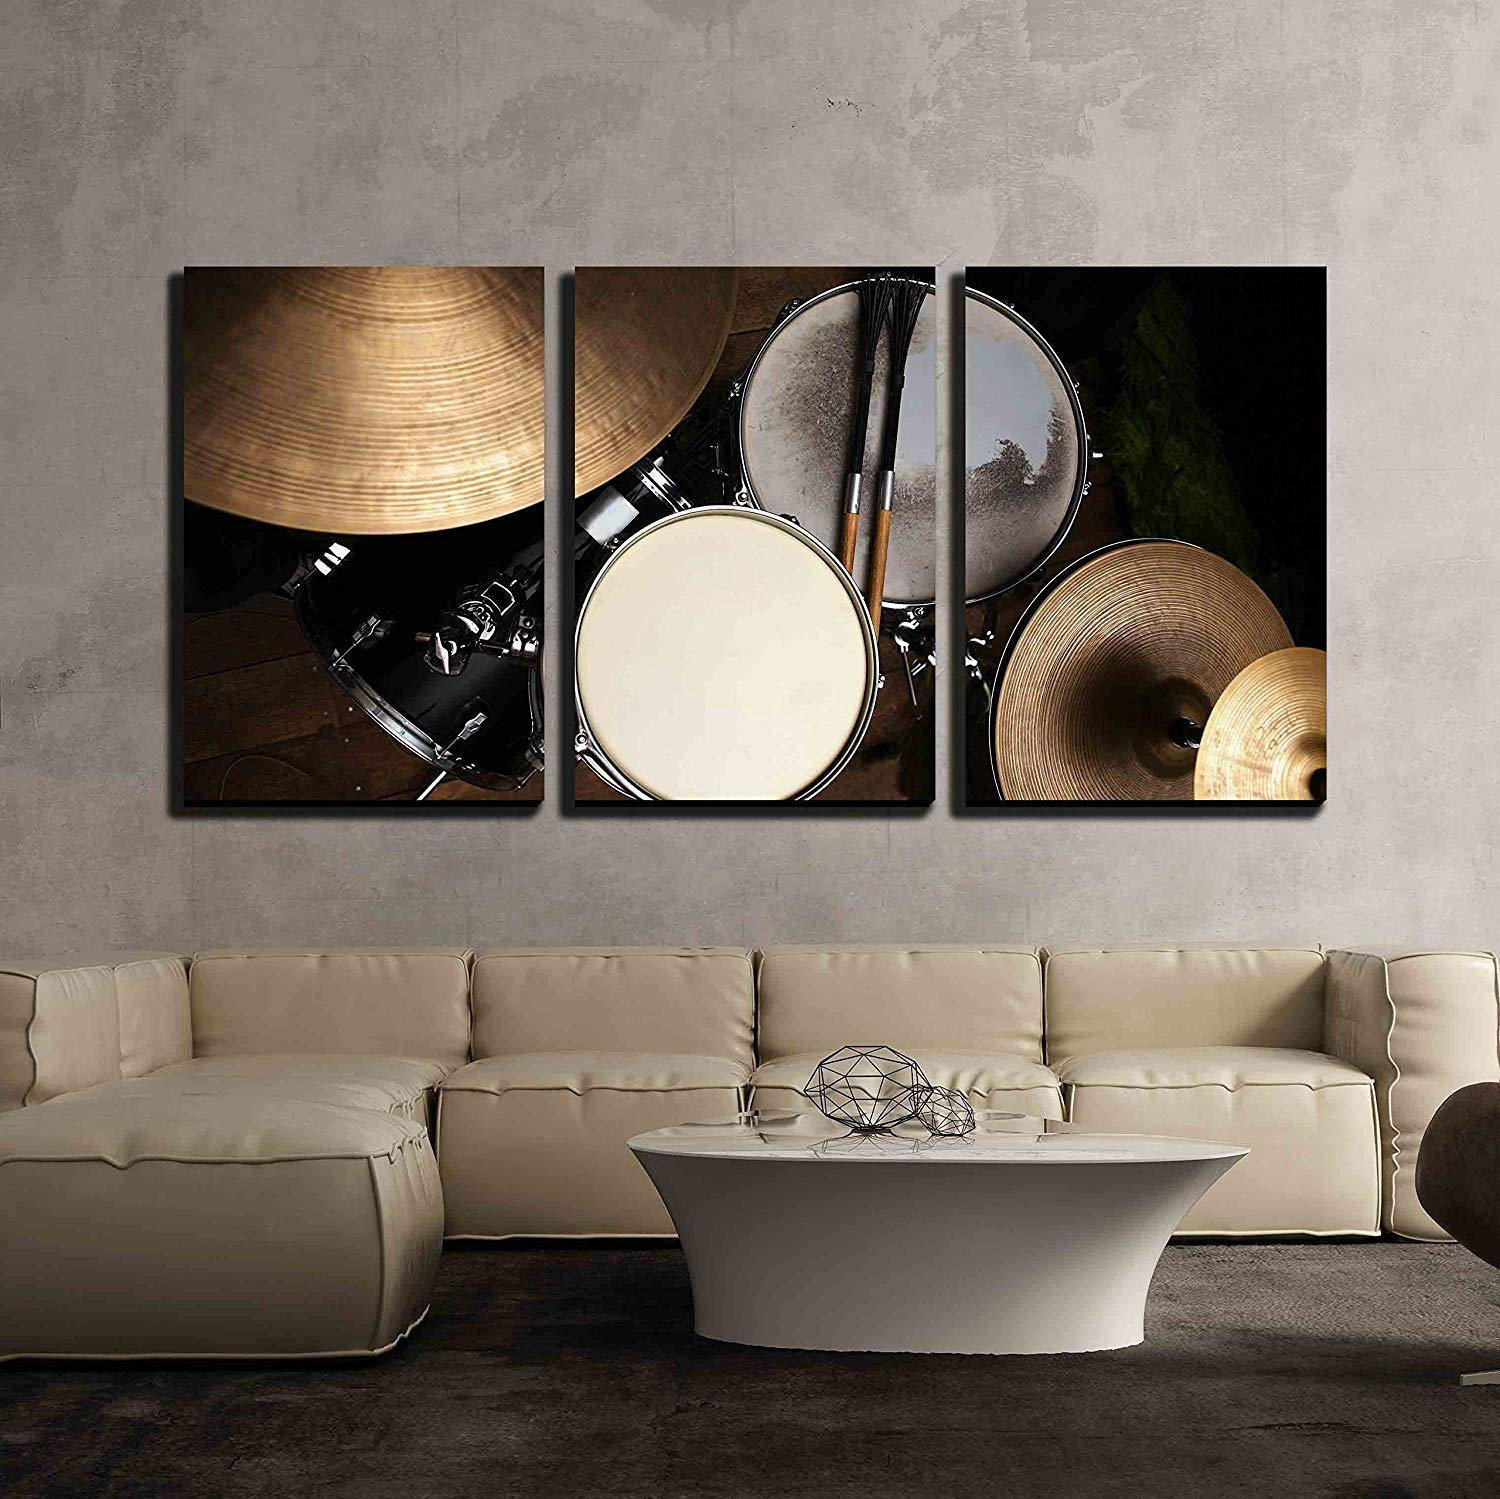 wall26 - 3 Piece Canvas Wall Art - Drum Set in Dramatic...